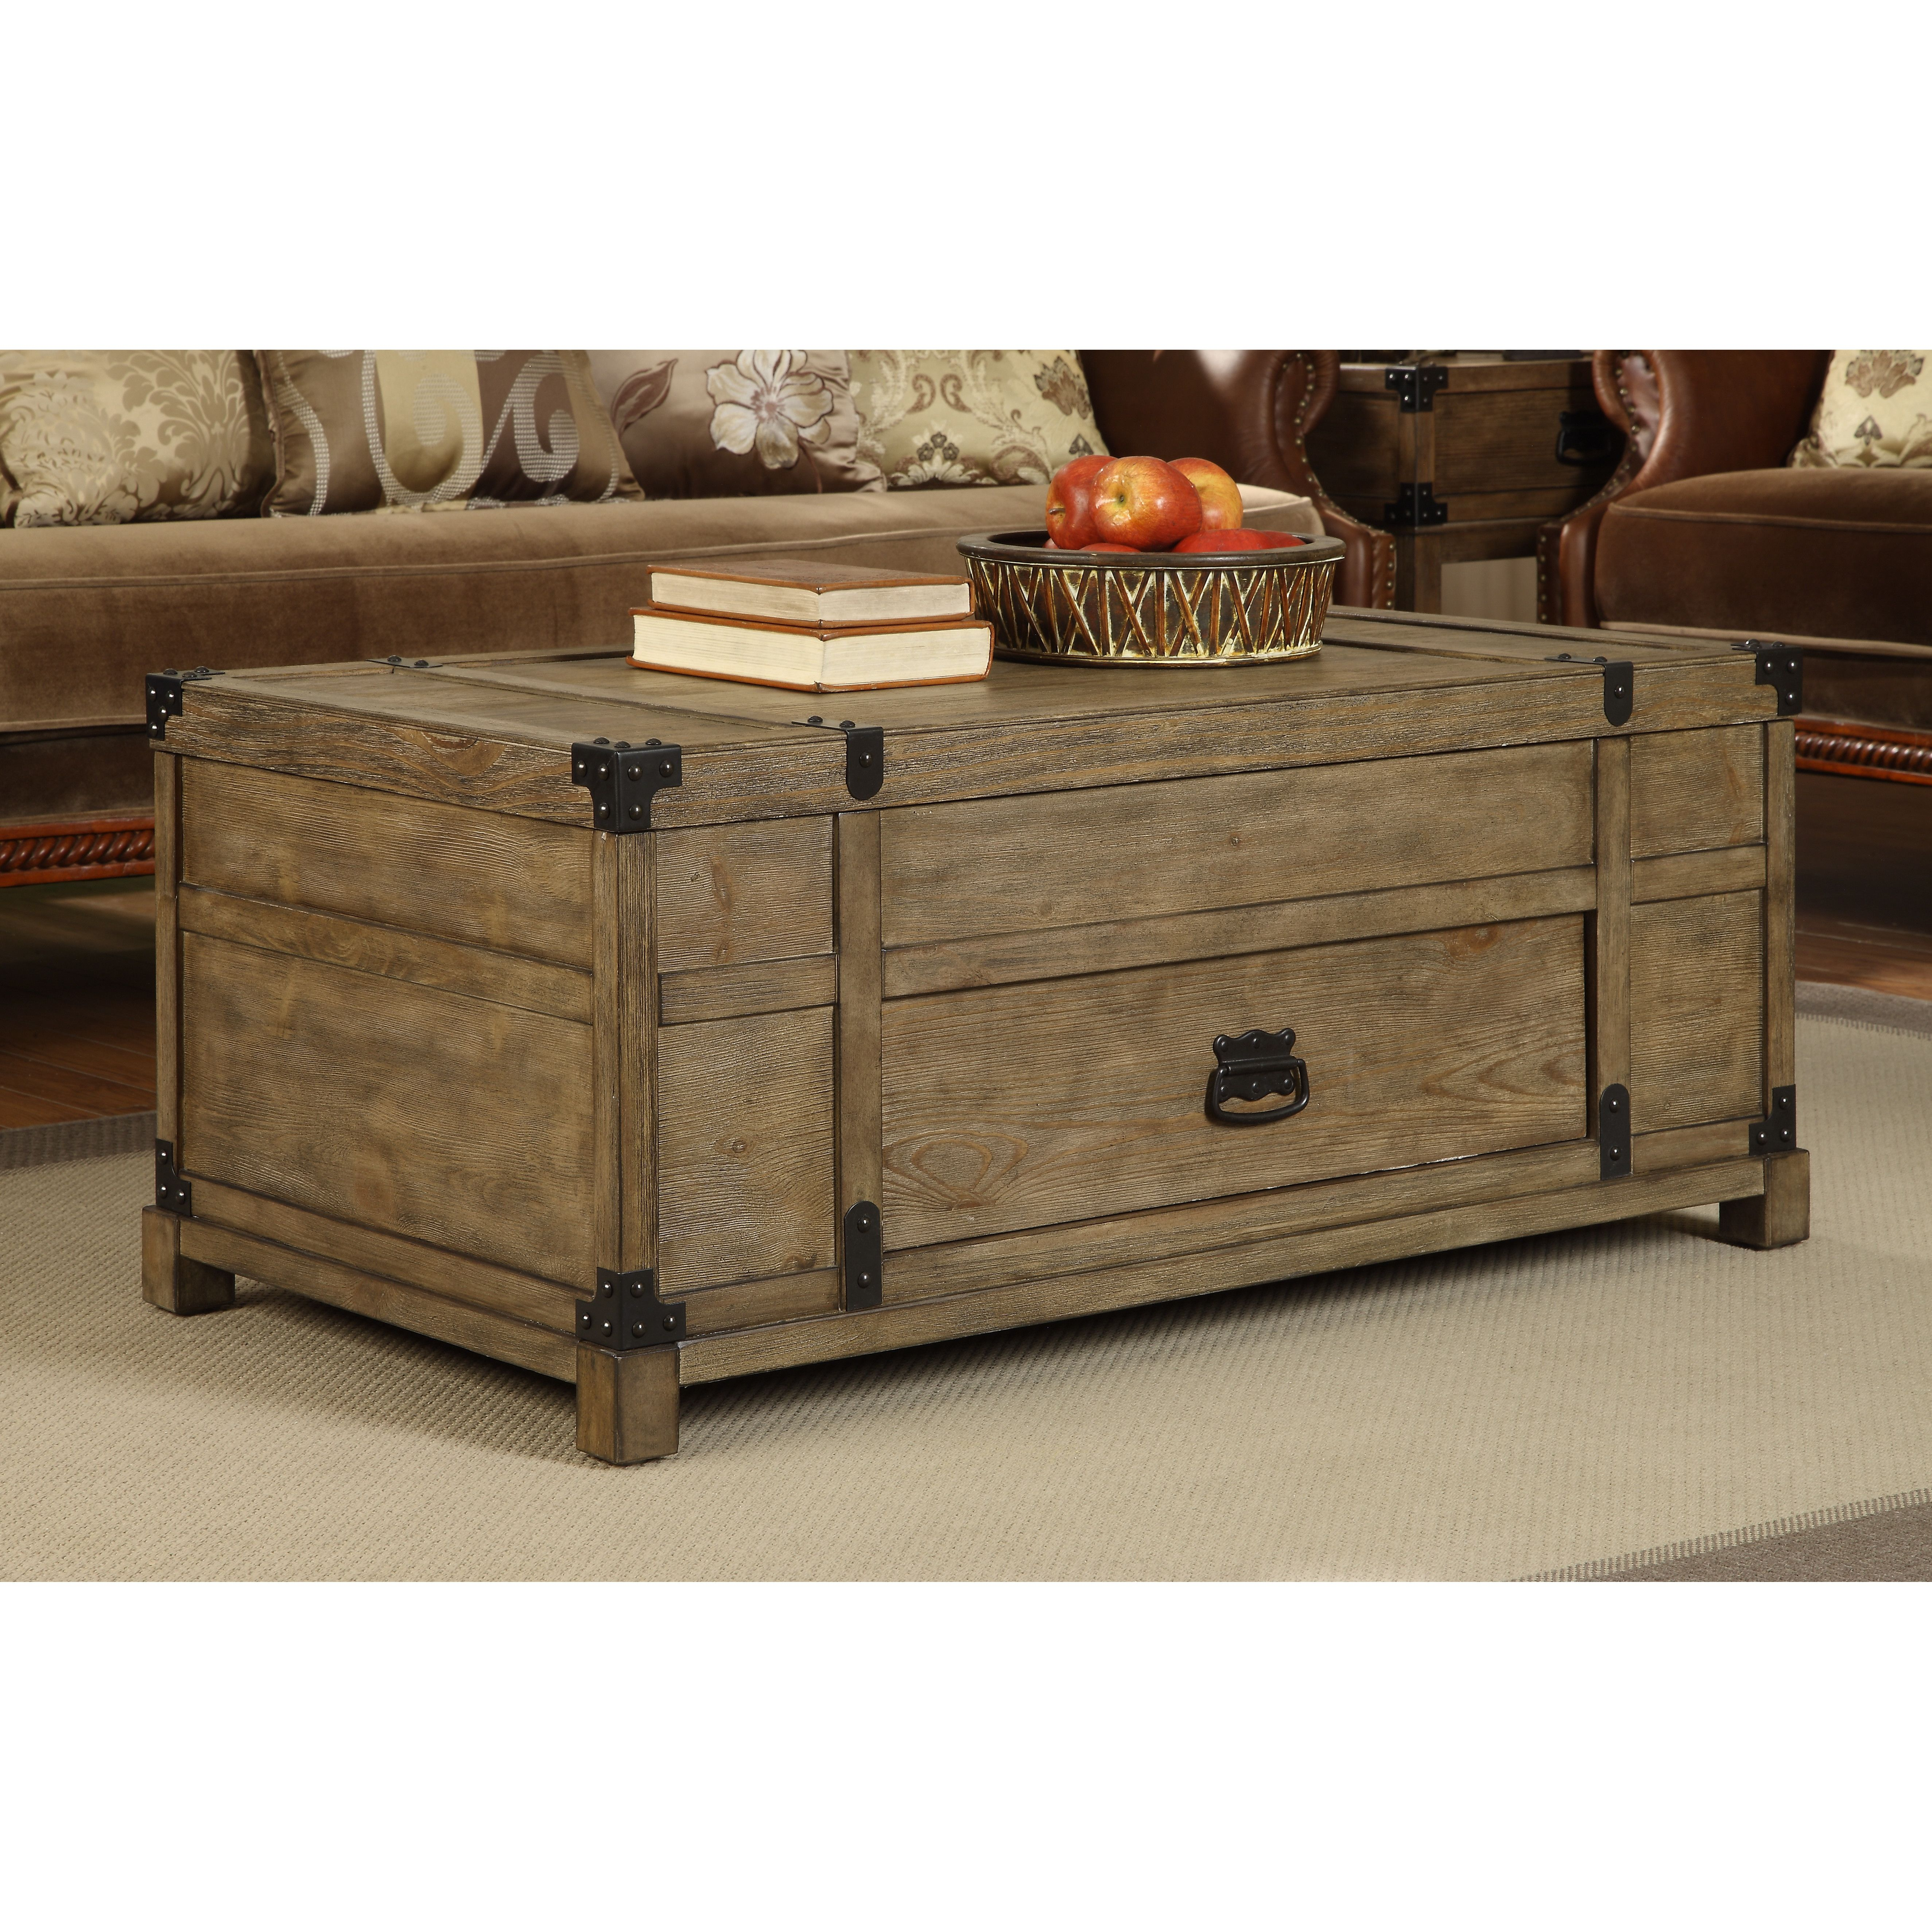 Features Lift Top 1 Drawer Distressed Yes Product Type Coffee Table Trunks Material Wo Coffee Table Lift Top Coffee Table Wood Cocktail Table [ 5298 x 5298 Pixel ]